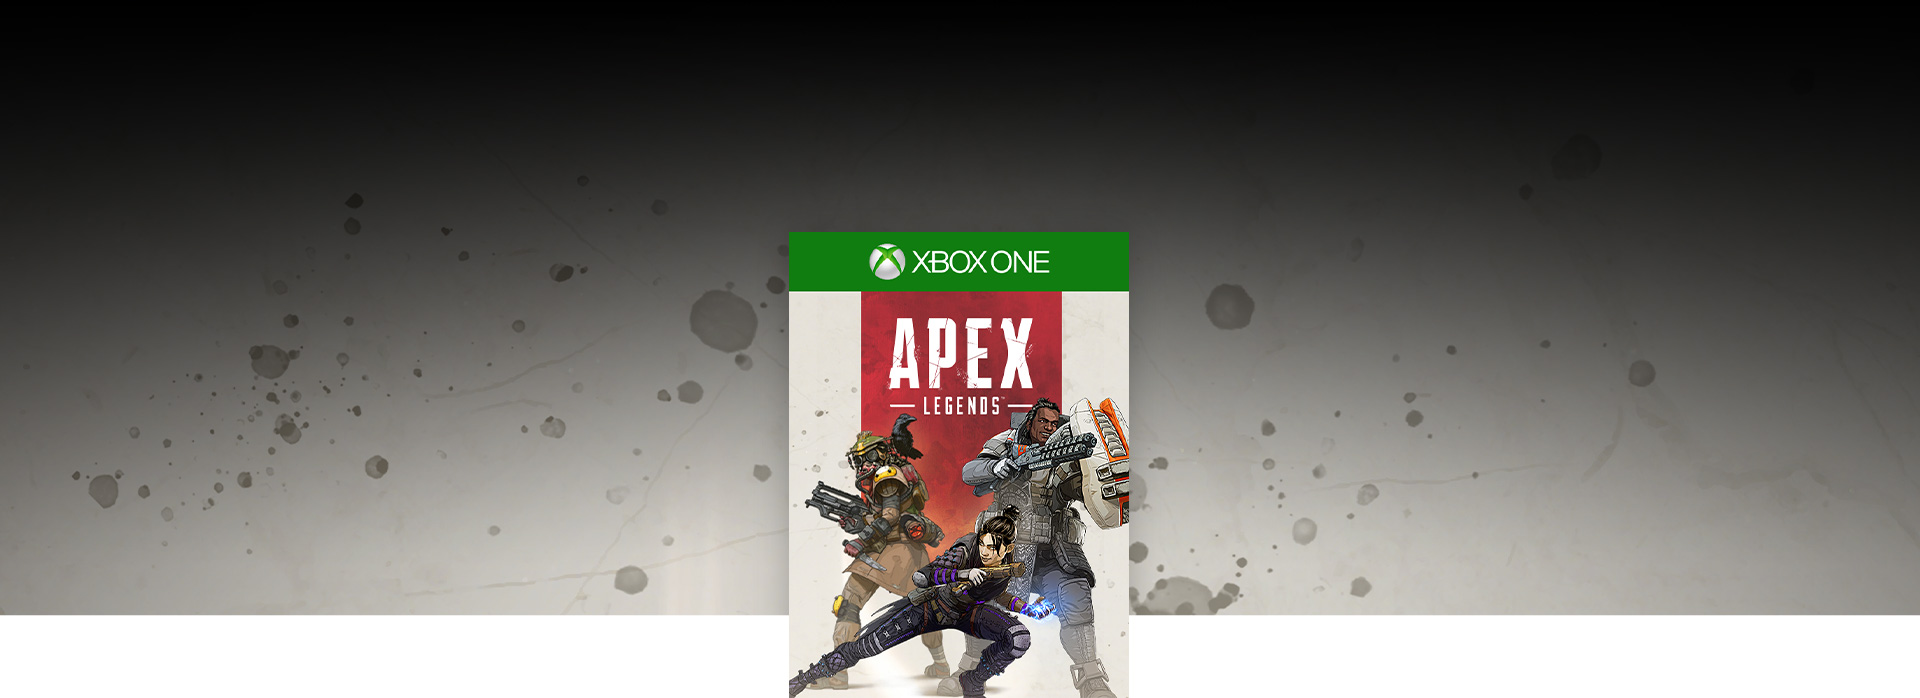 Apex Legends-coverbilde over bakgrunn med grå tekstur